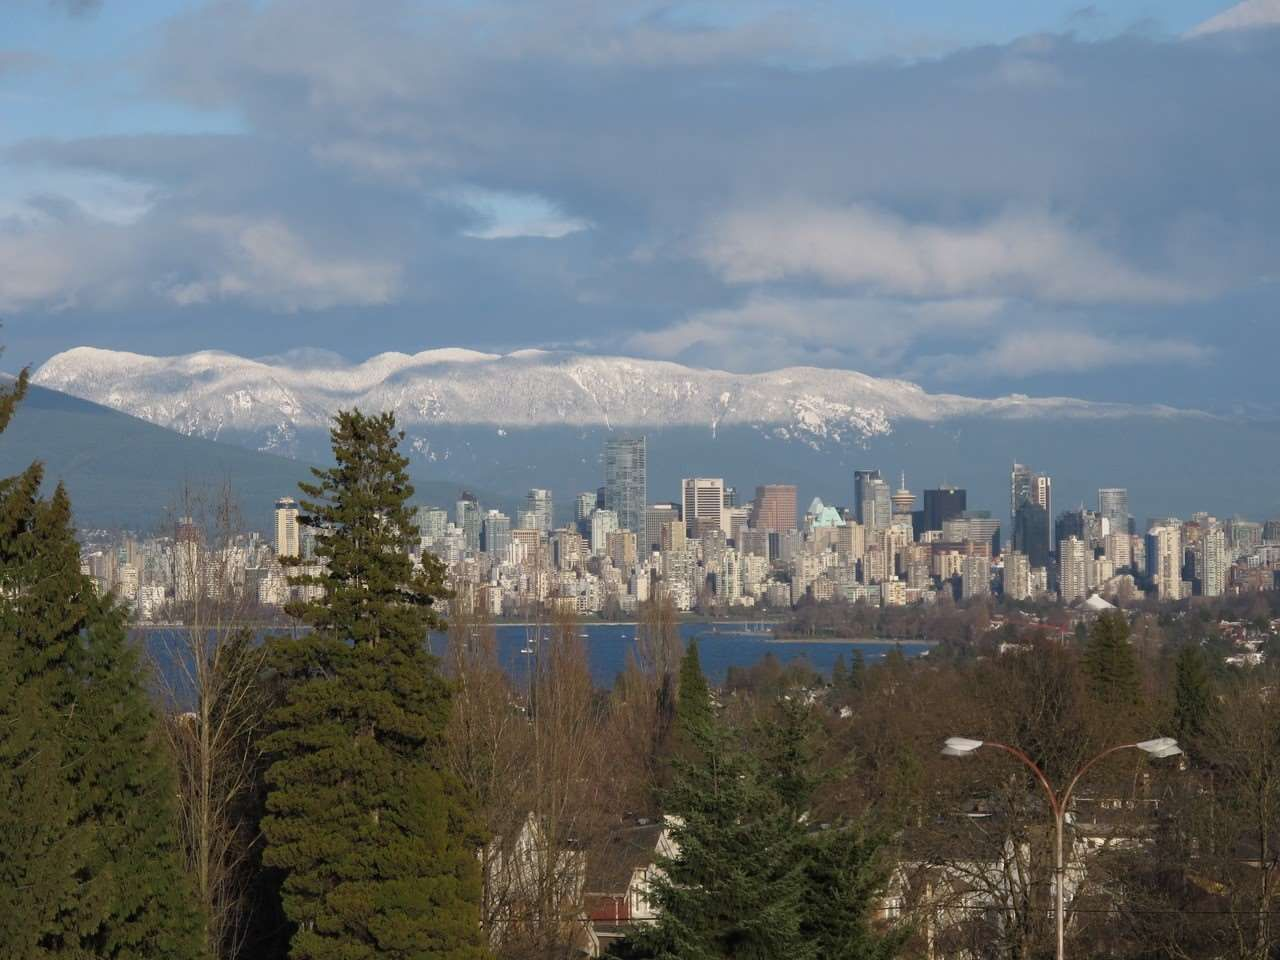 Main Photo: 502 2580 TOLMIE STREET in Vancouver: Point Grey Condo for sale (Vancouver West)  : MLS®# R2334008